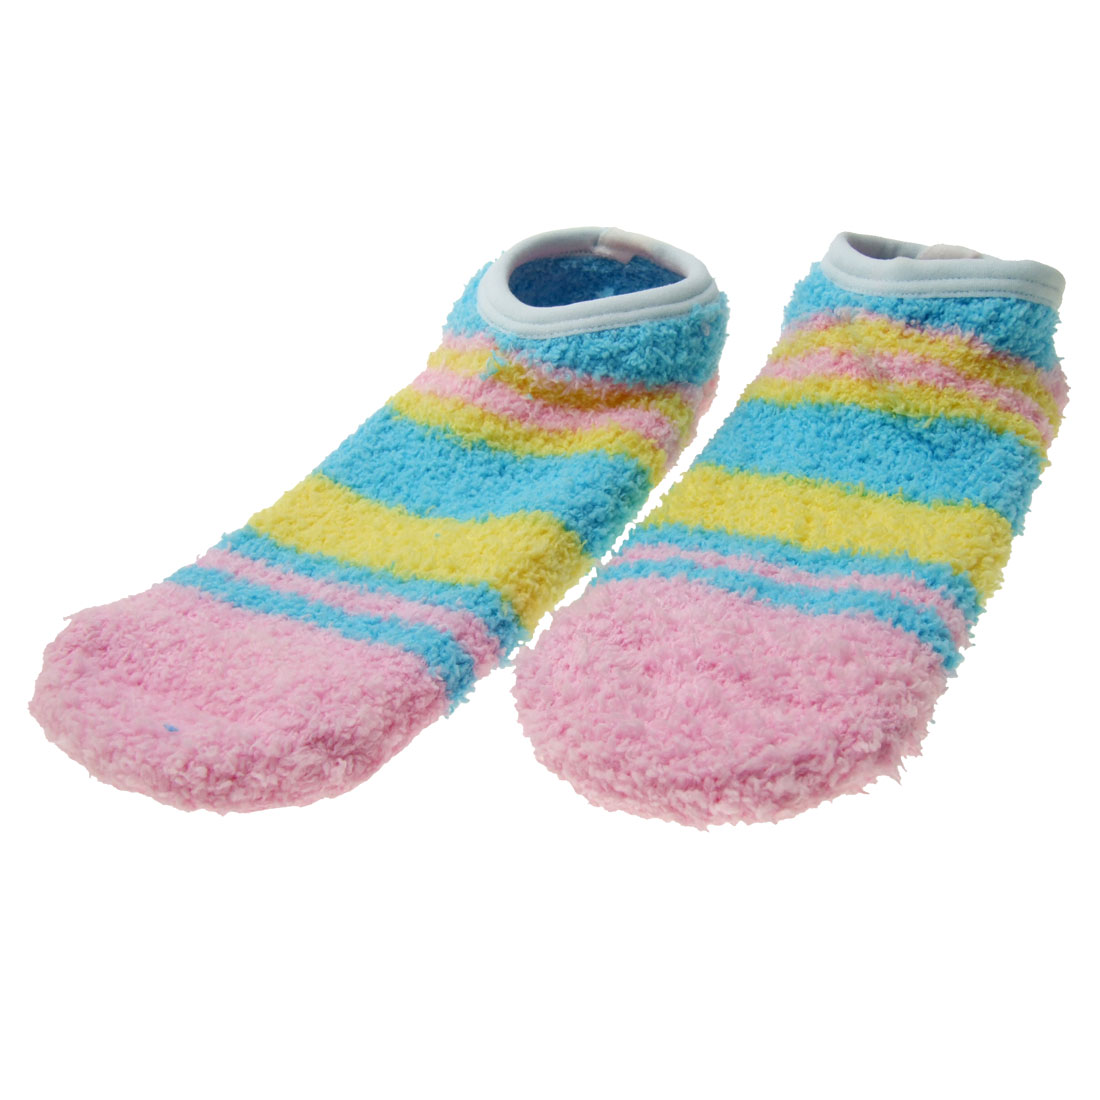 Skidproof Soft Plush Household Ladies' Pair Floor Socks